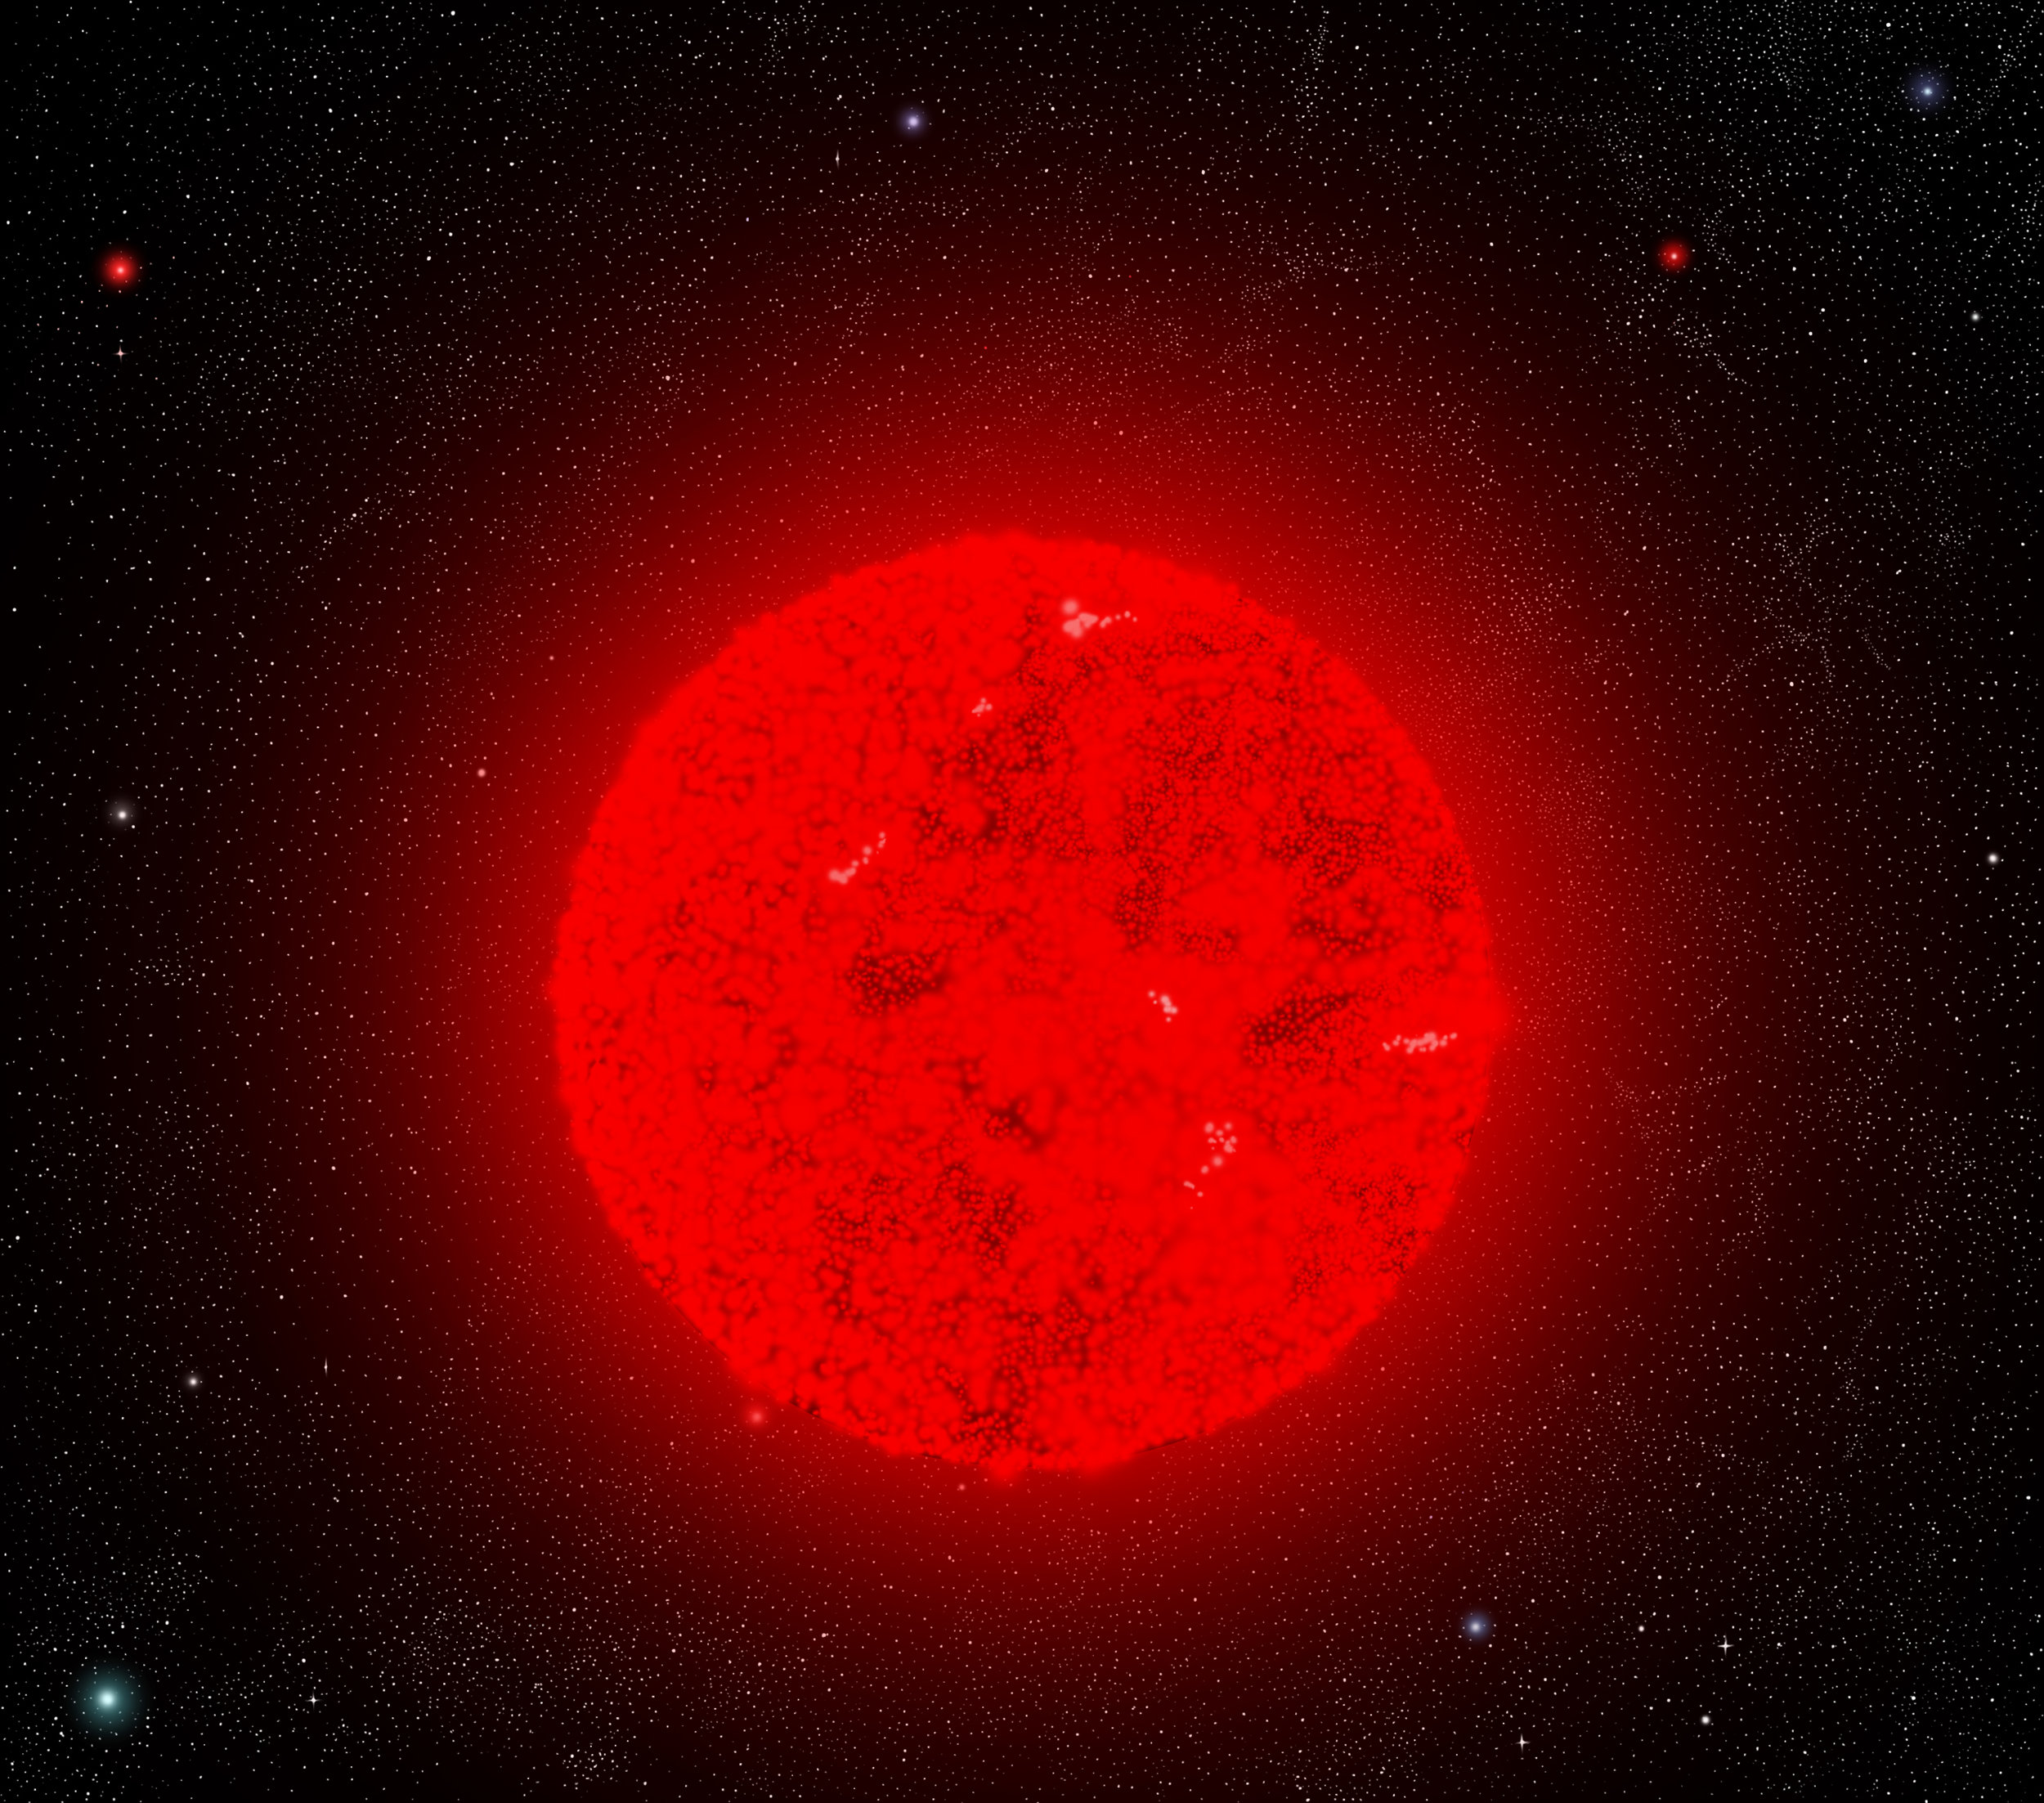 Artist's impression of the star in its multi-million year long and previously unobservable phase as a large, red supergiant. - Image Credit:  Sephirohq/WikimediaCommons